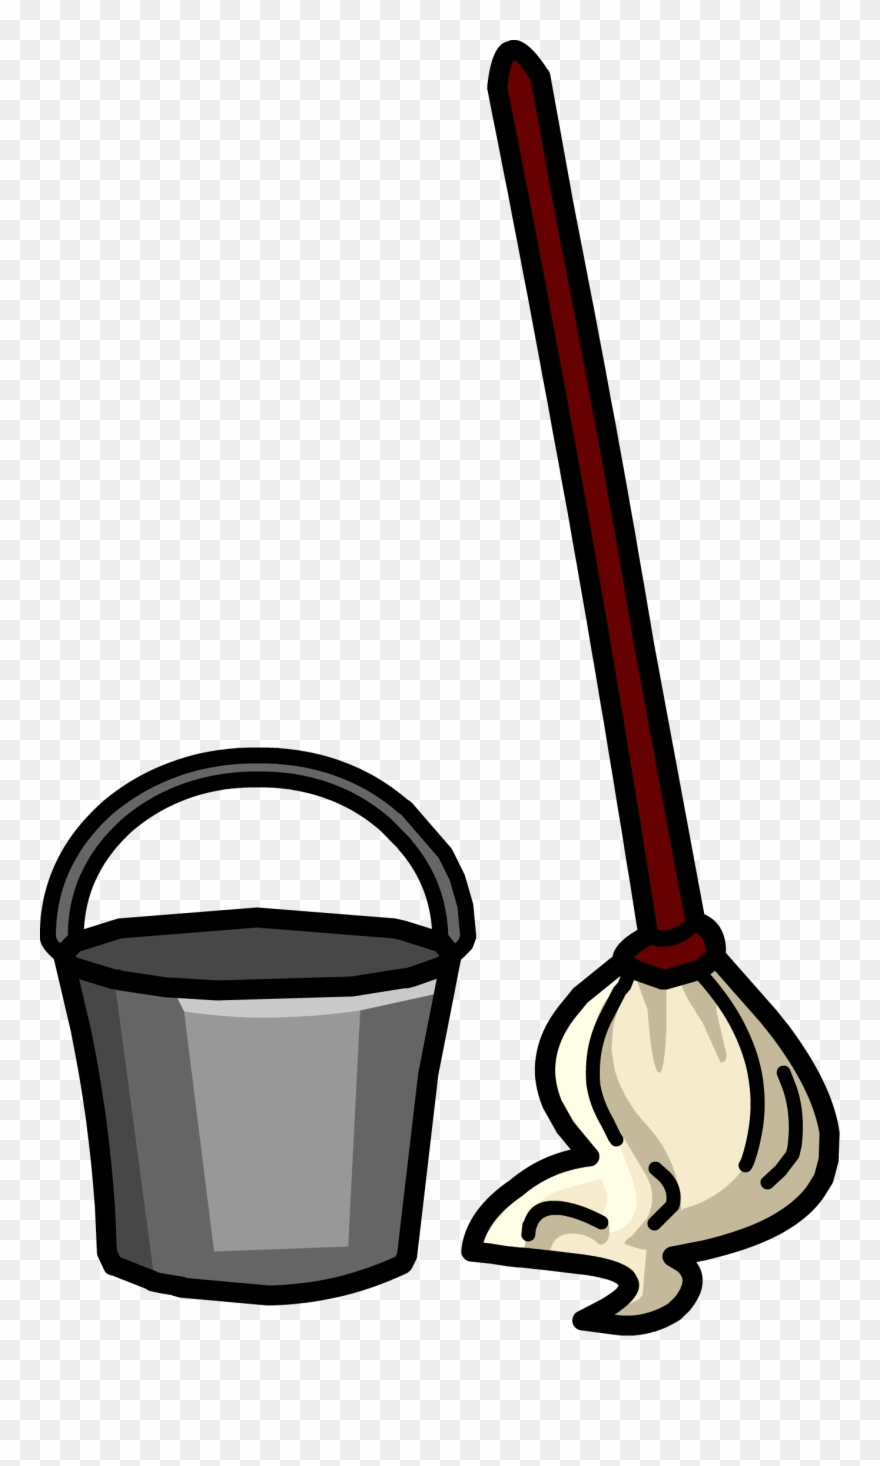 Mop and pail clipart vector library Free Mop Clip Art Bucket Broom Pic - Mop Bucket Clip Art - Png ... vector library